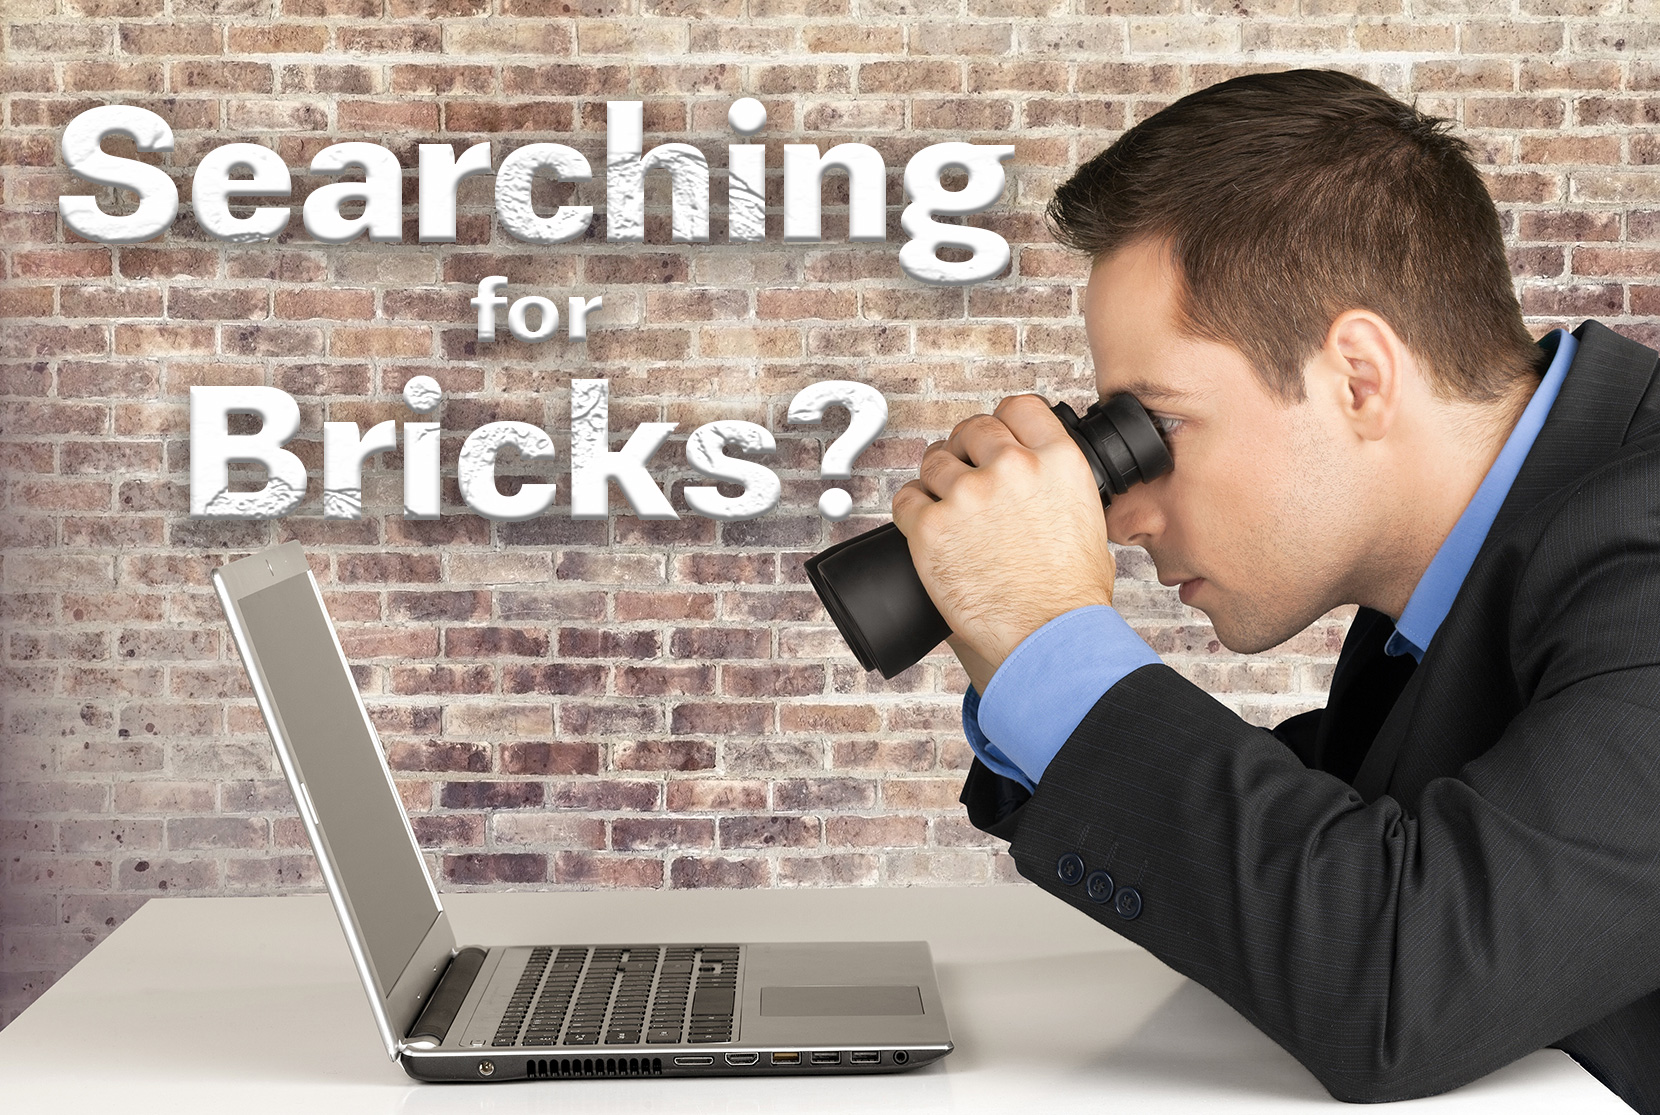 Are you looking for bricks?